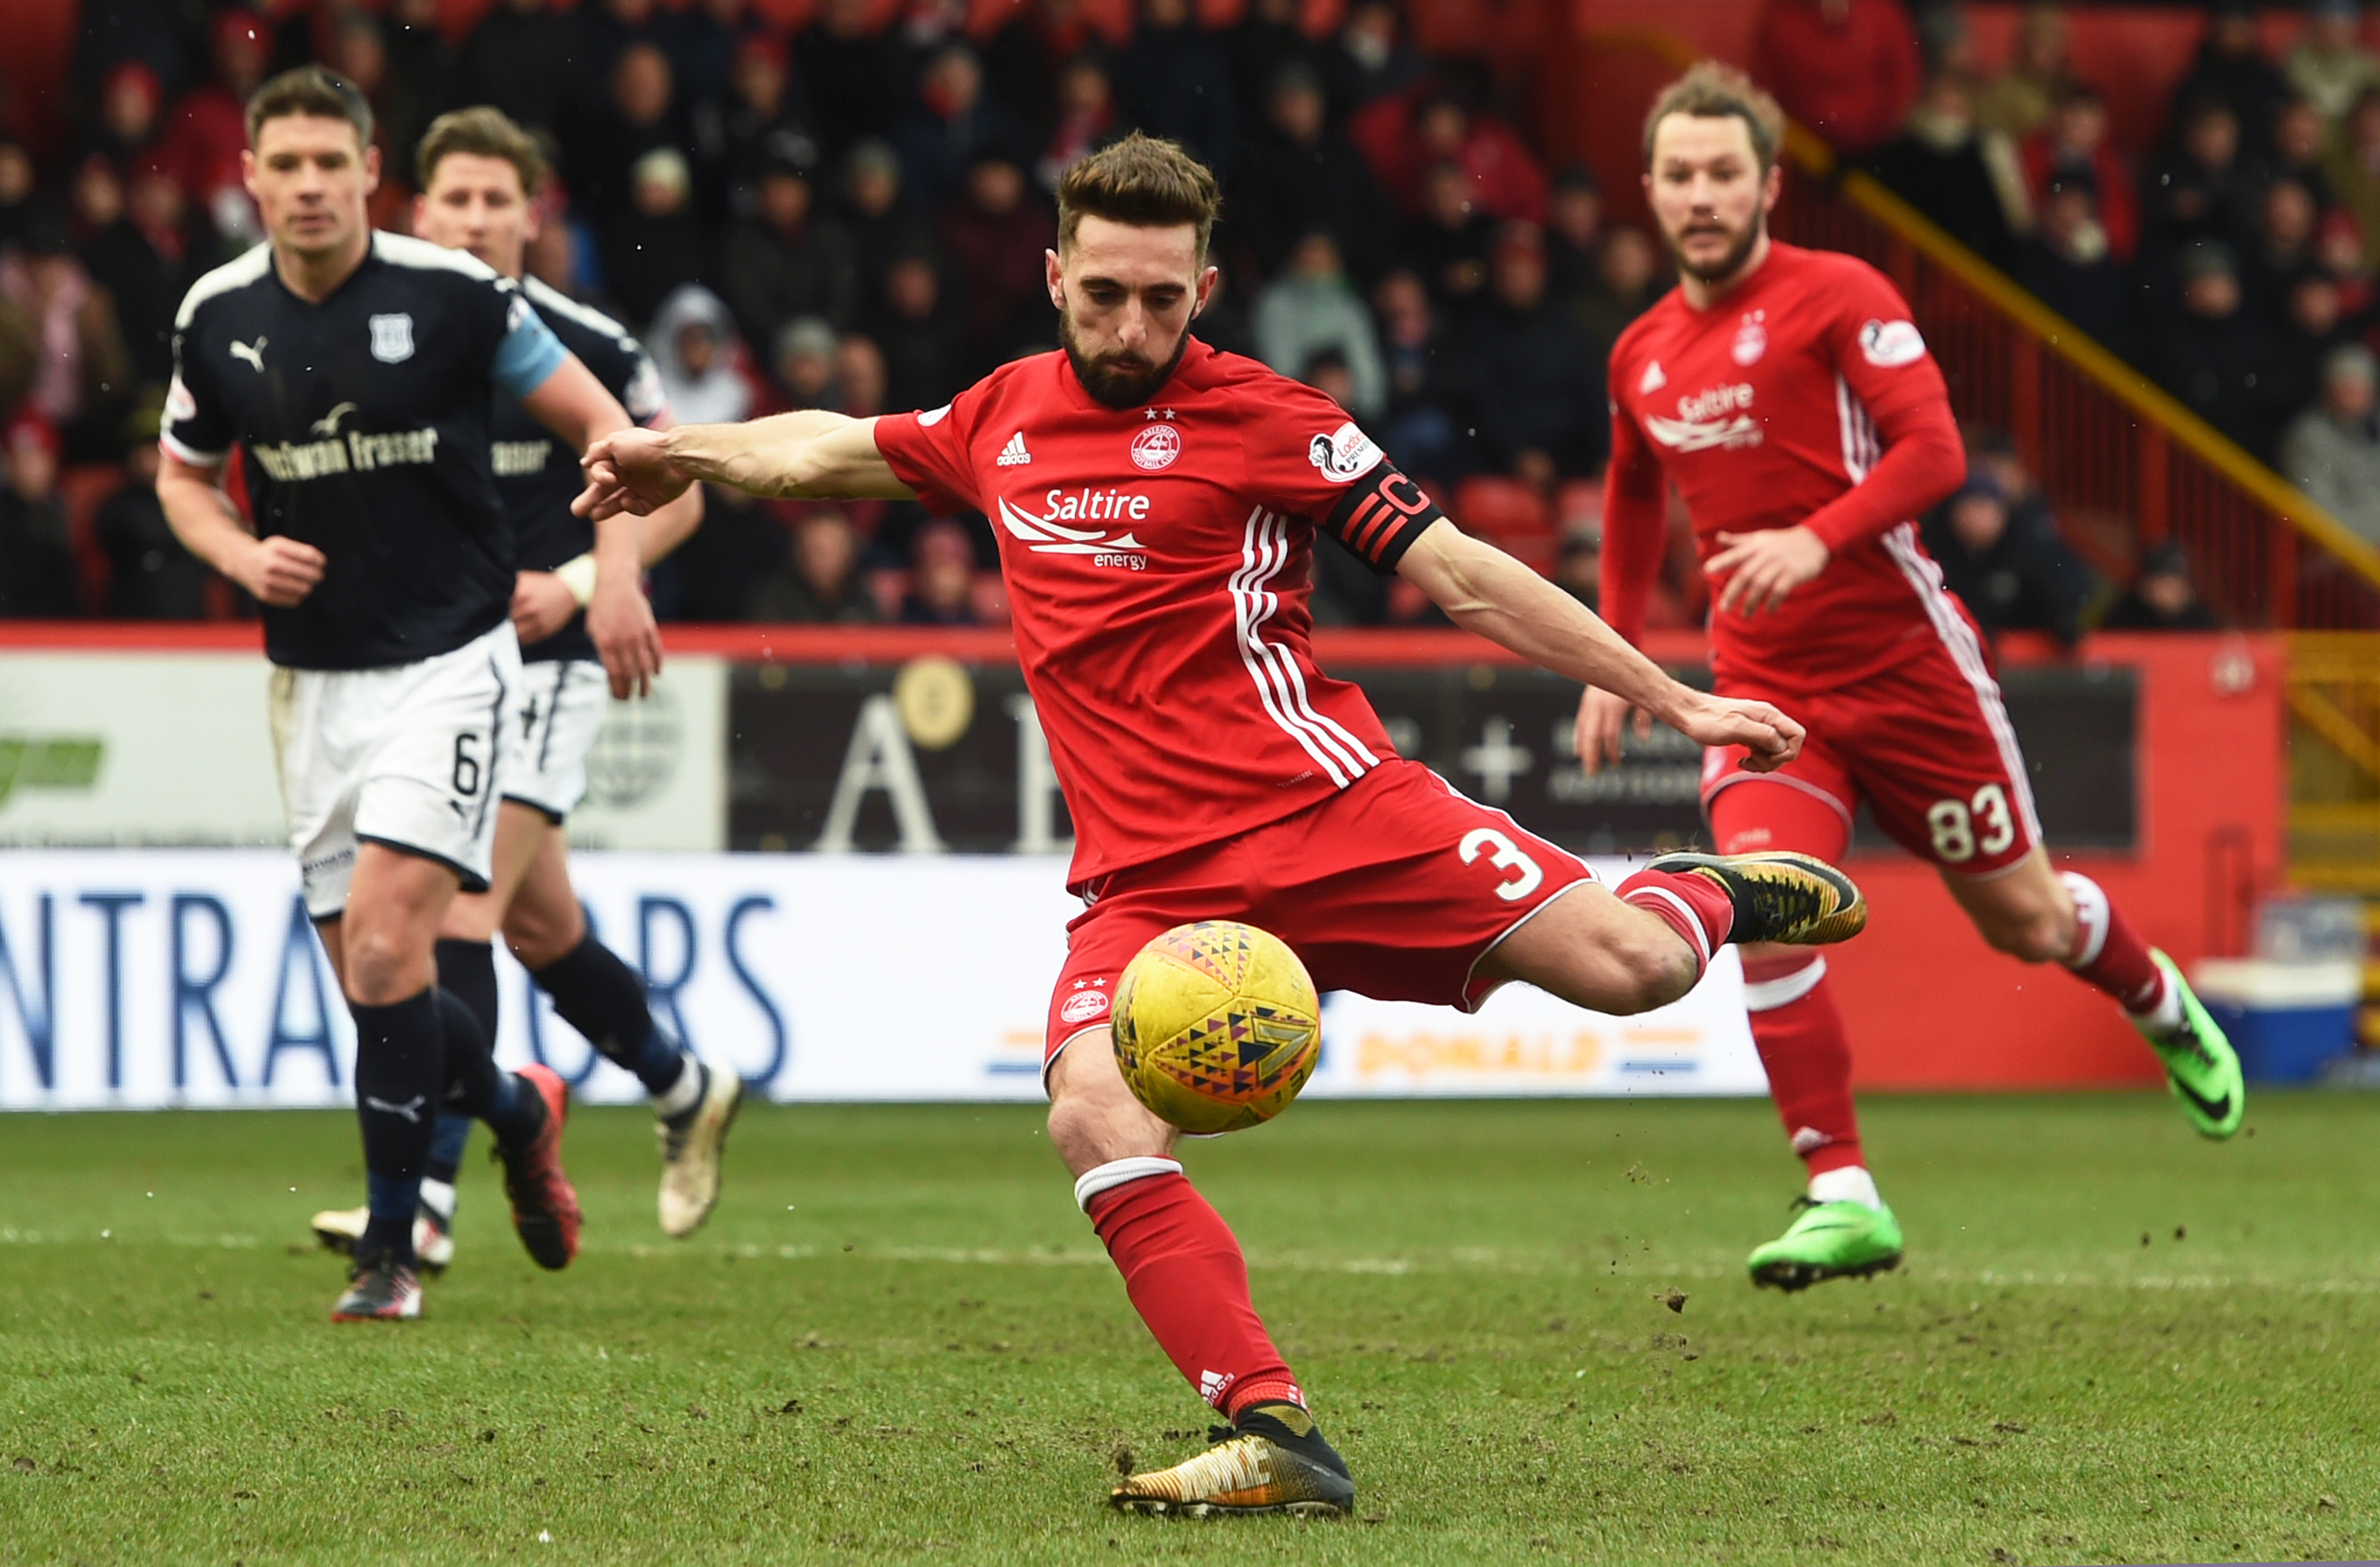 Aberdeen Captain Graeme Shinnie scores to make it 1-0.